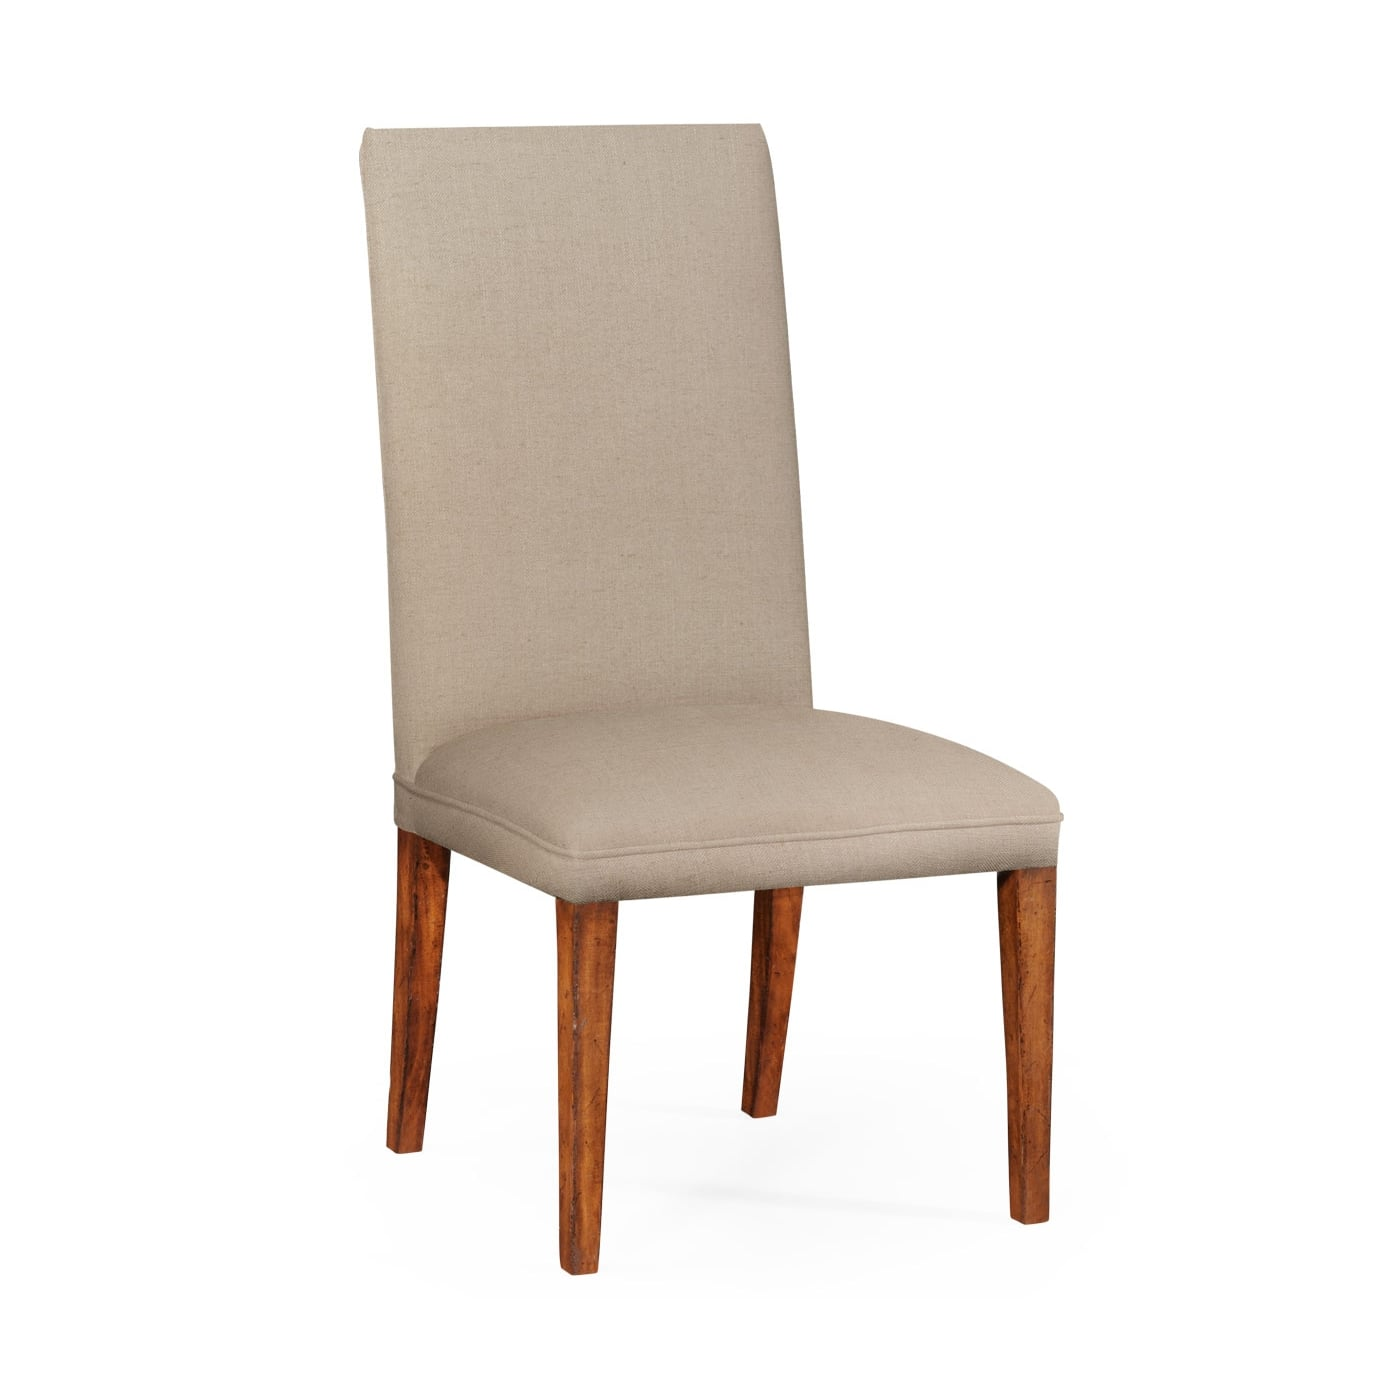 dining chairs upholstered outdoor chair for elderly swanky interiors